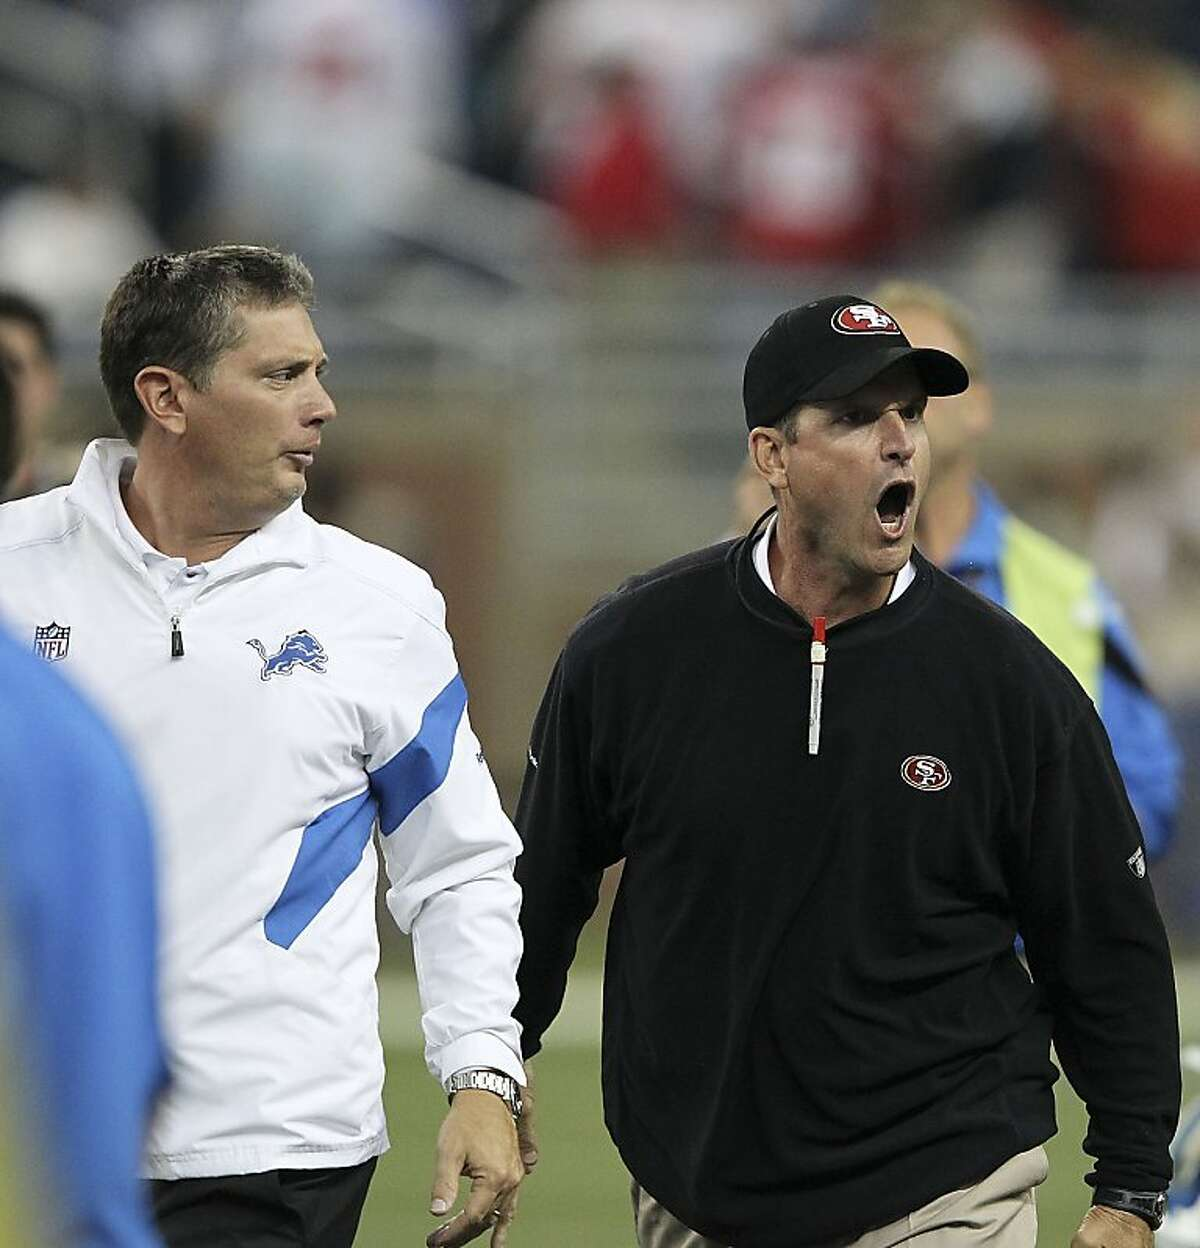 DETROIT - OCTOBER 16: Jim Harbaugh head coach of the San Francisco 49ers argues with Jim Schwartz of the Detroit Lions during the NFL game at Ford Field on October 16, 2011 in Detroit, Michigan. The 49ers defeated the Lions 25-19. (Photo by Leon Halip/Getty Images)